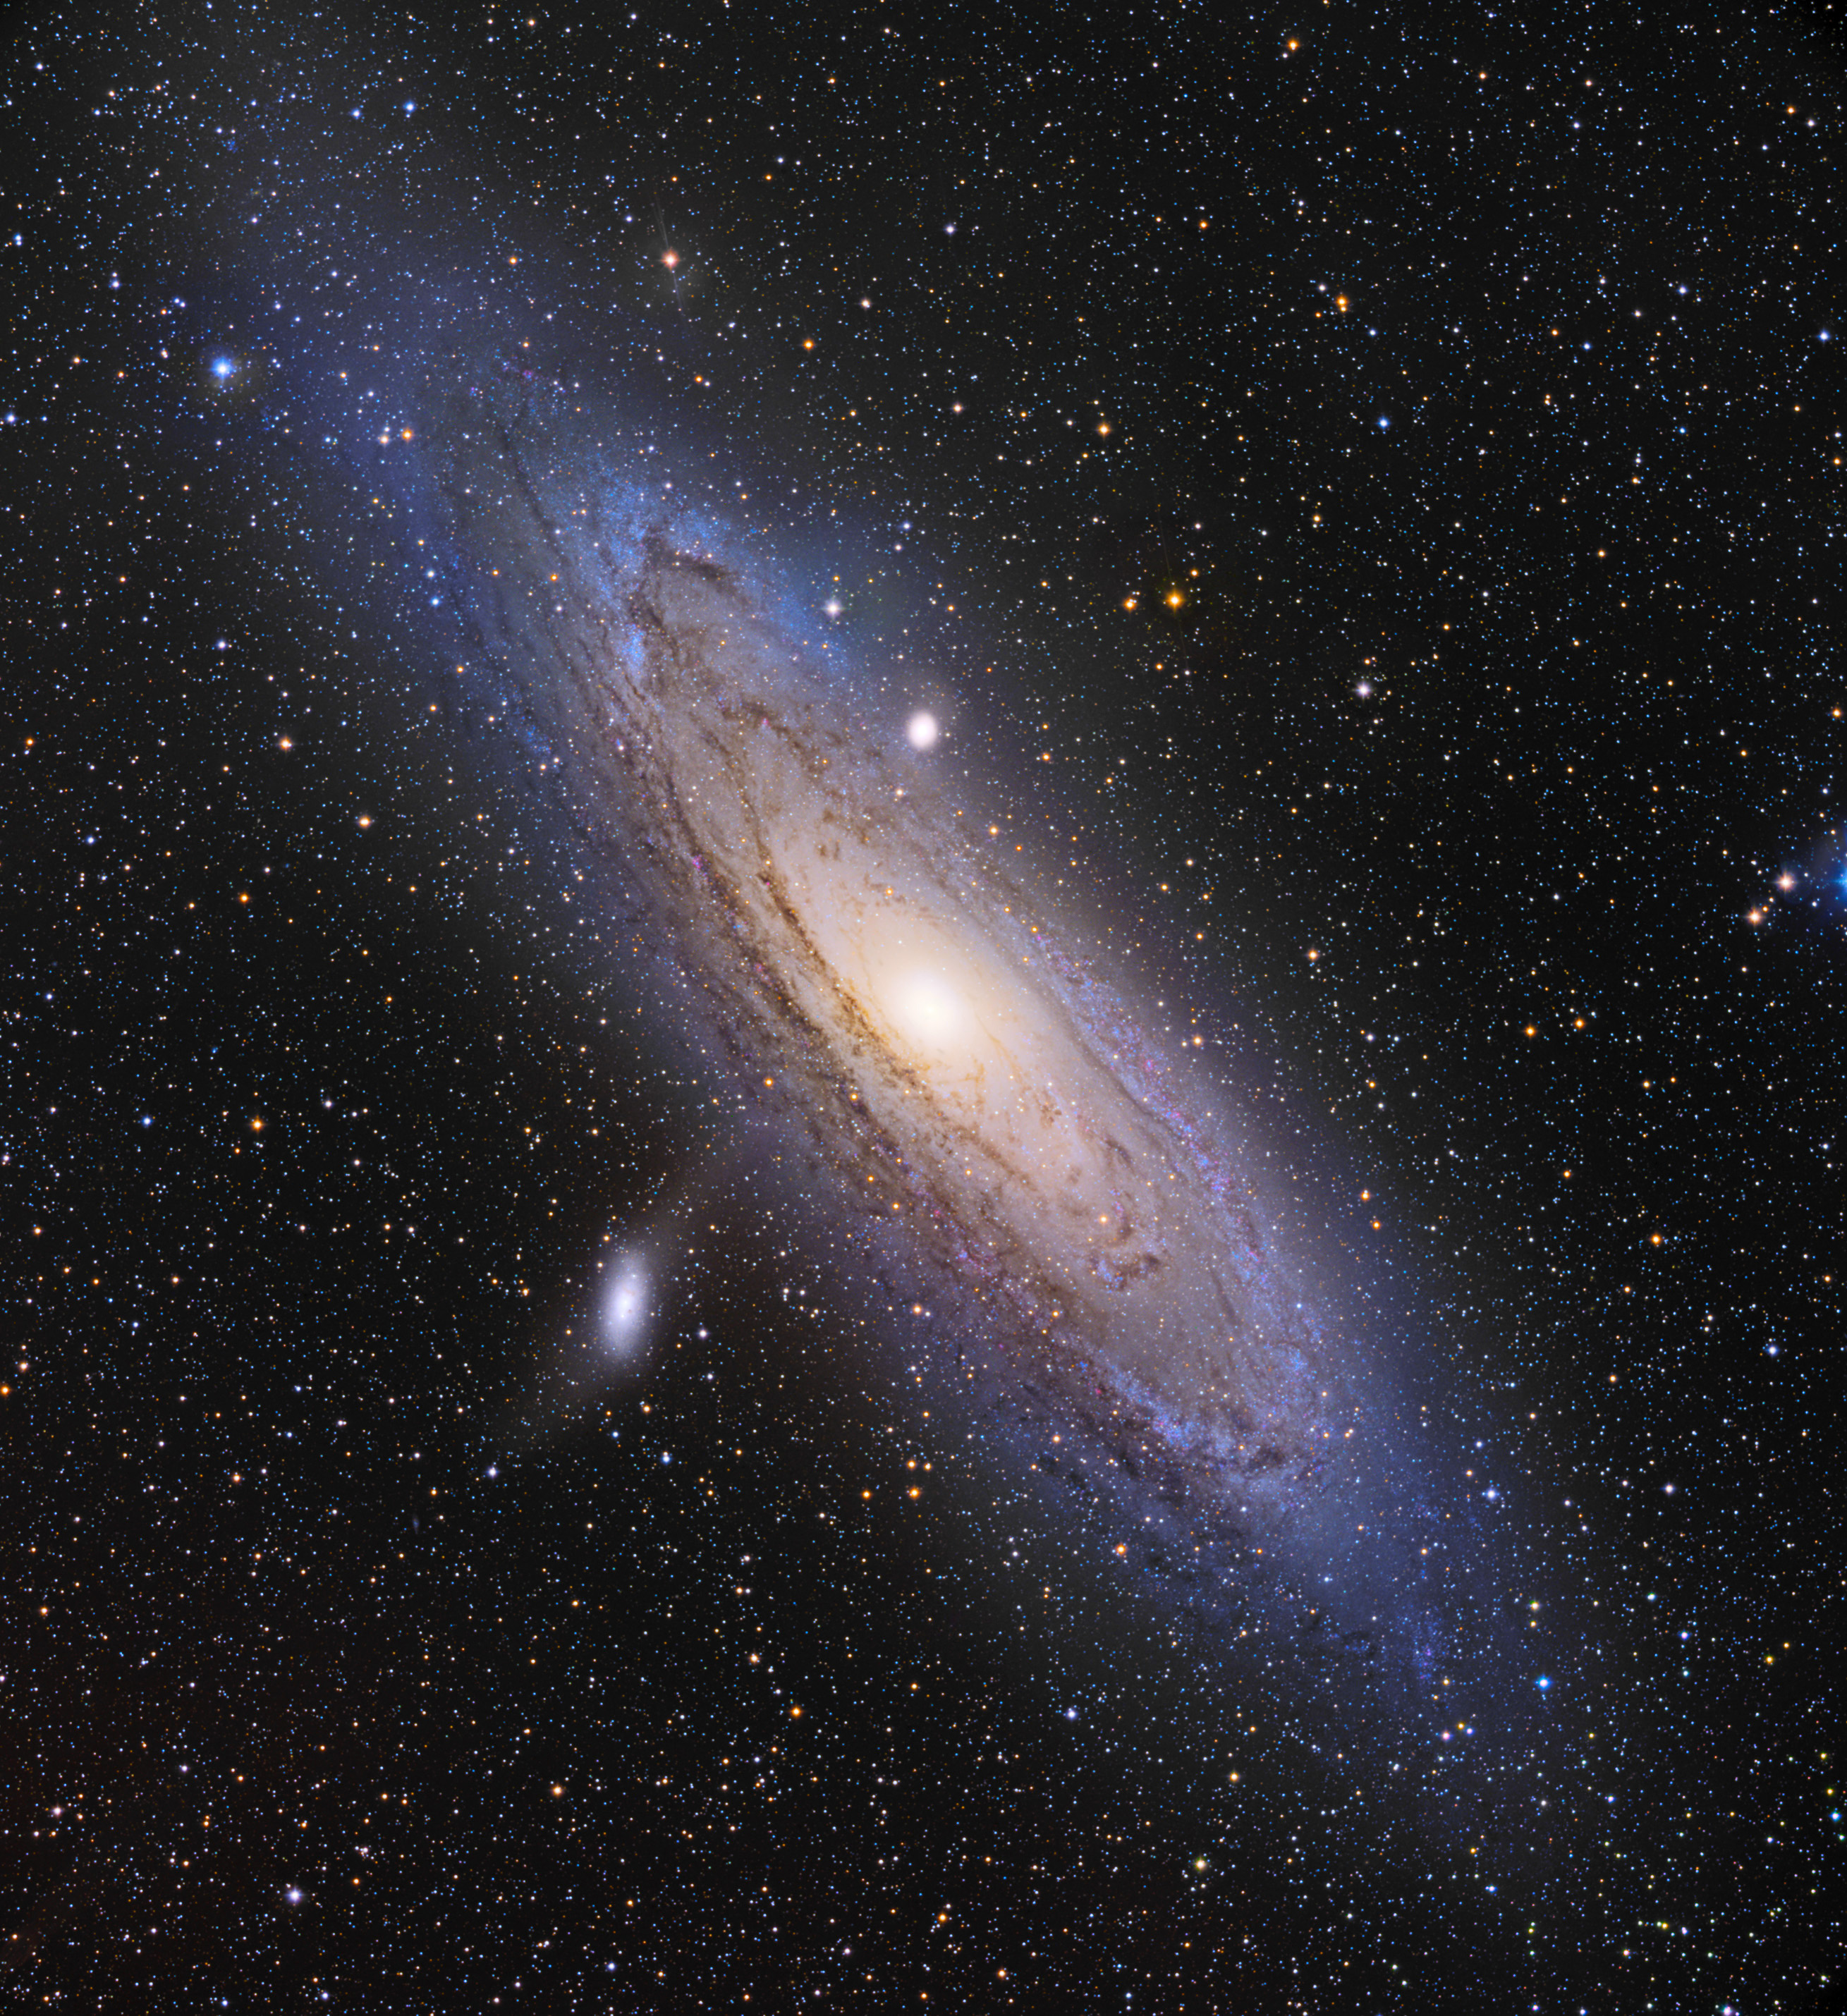 andromeda galaxy - photo #11